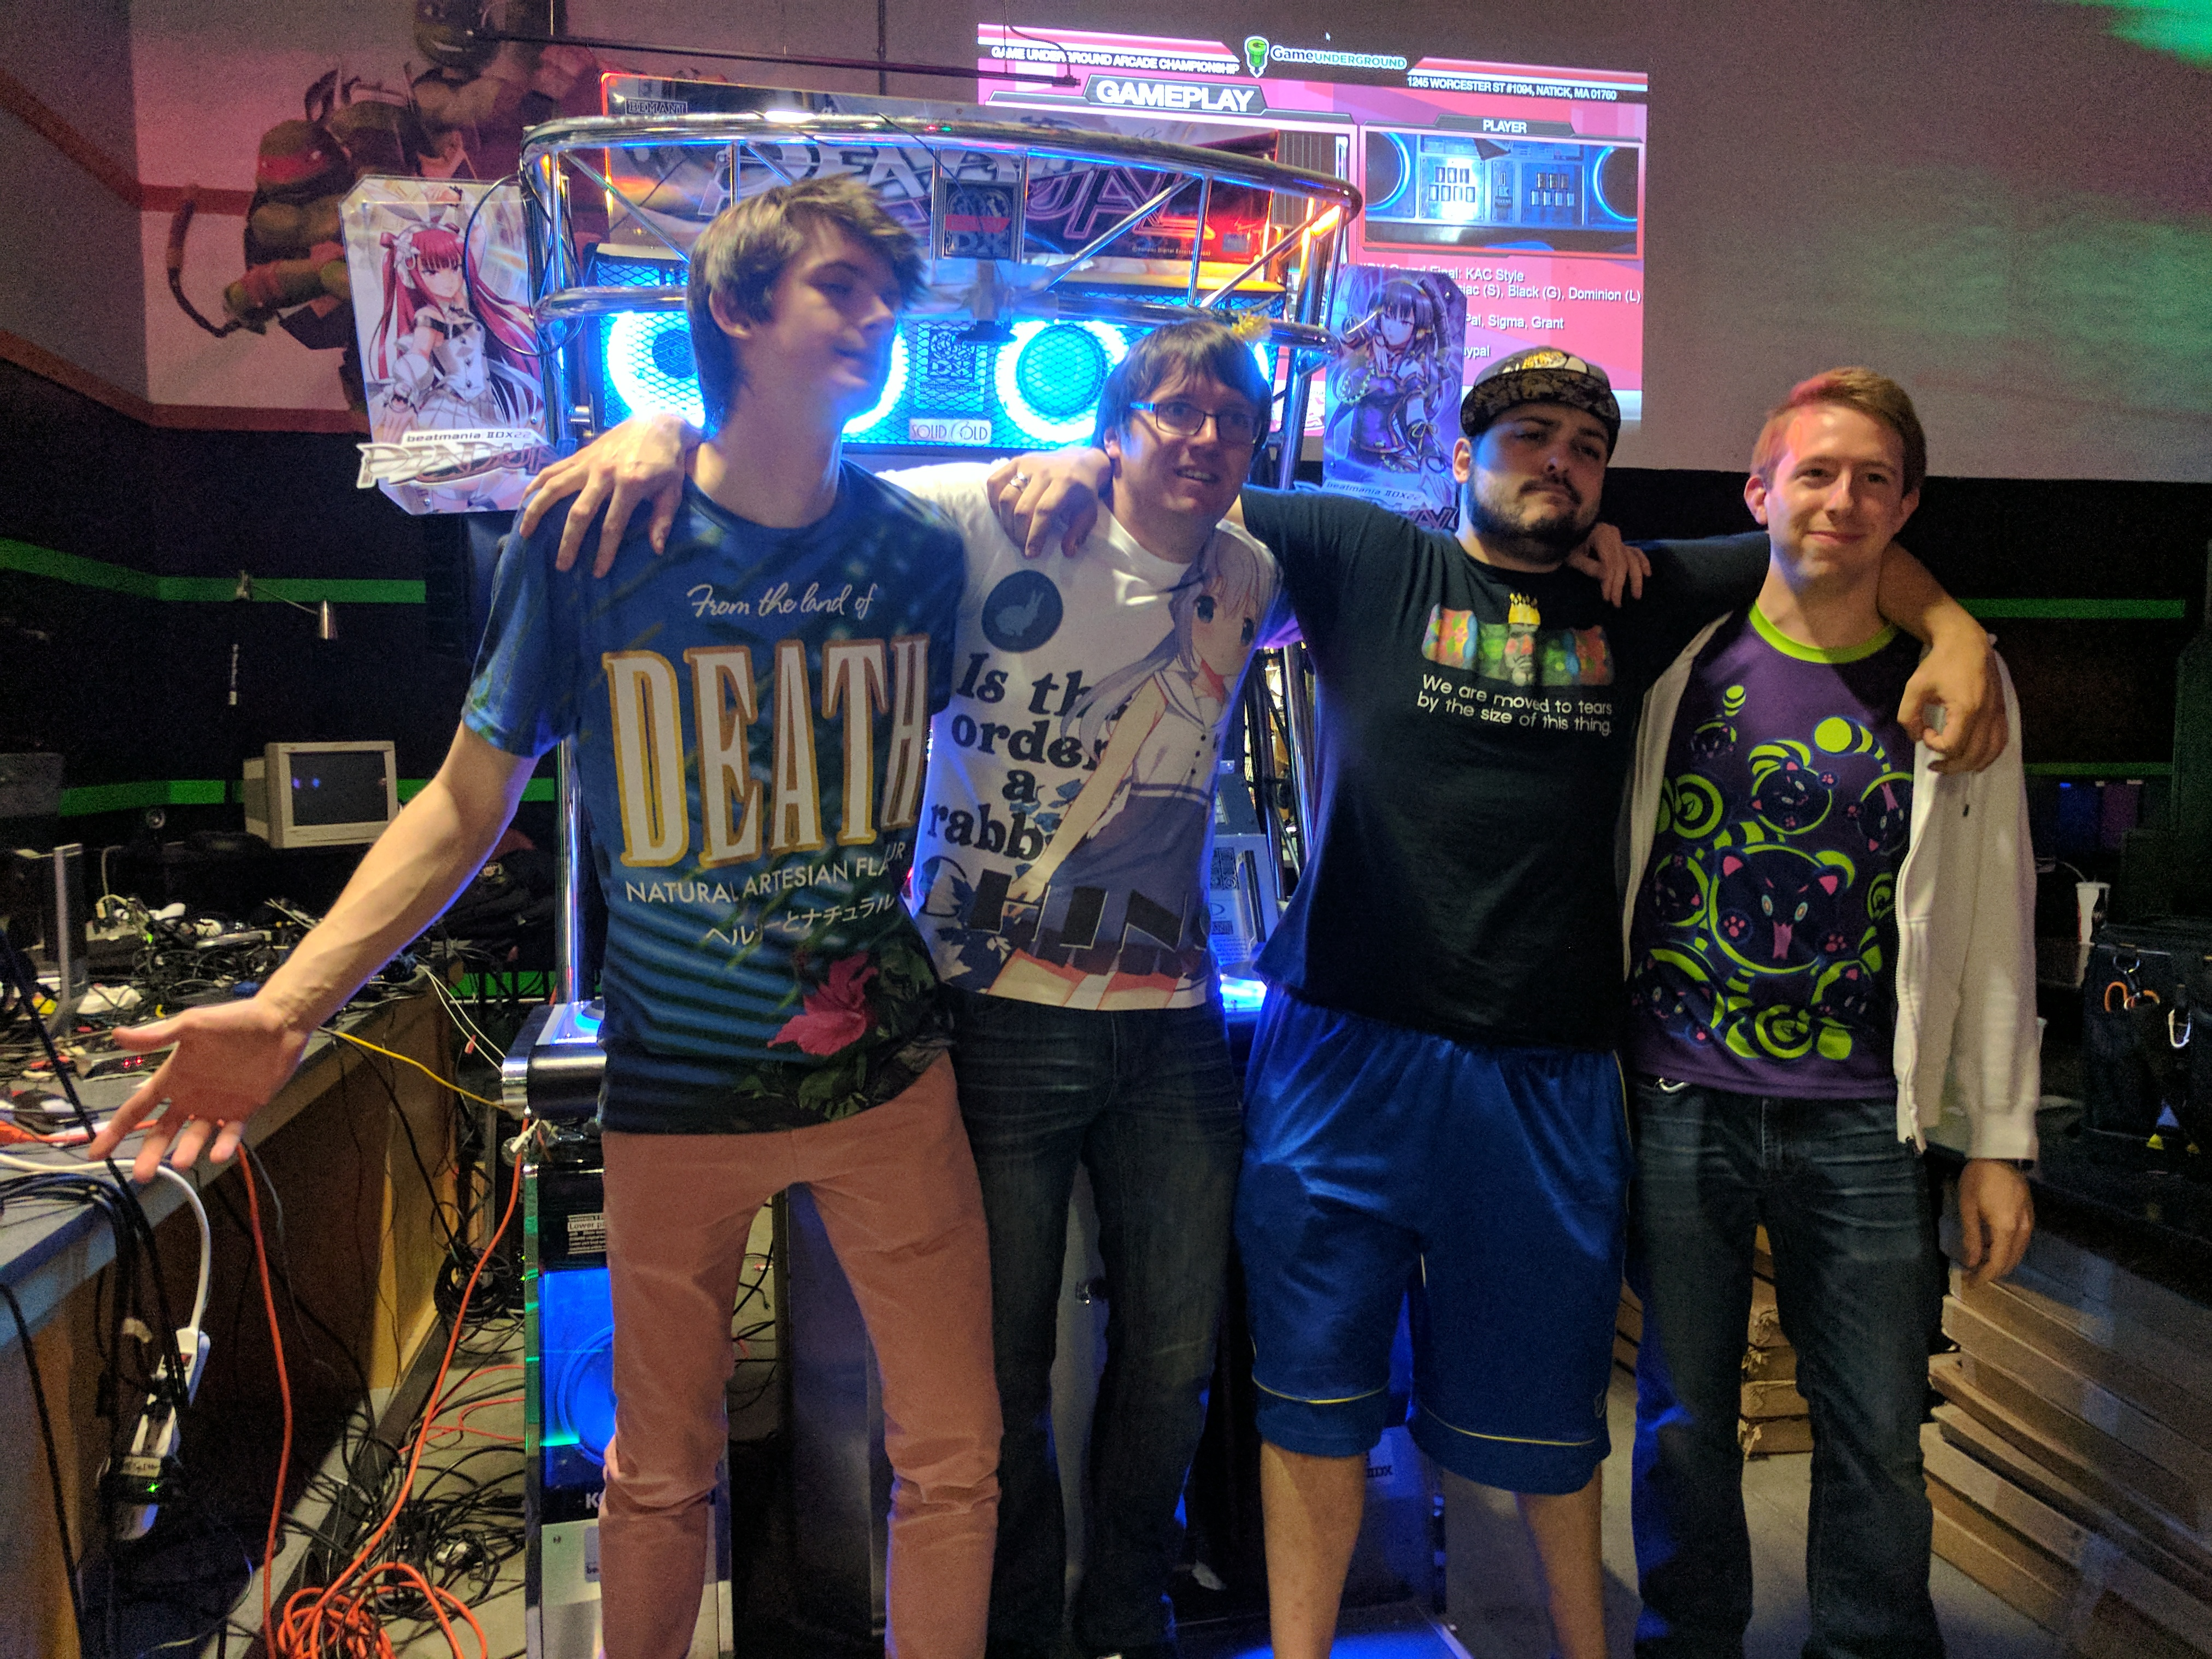 beatmania IIDX Top 4 winners left to right: PayPal (2nd), Grant (1st), Sigma (3rd), Light (4th)